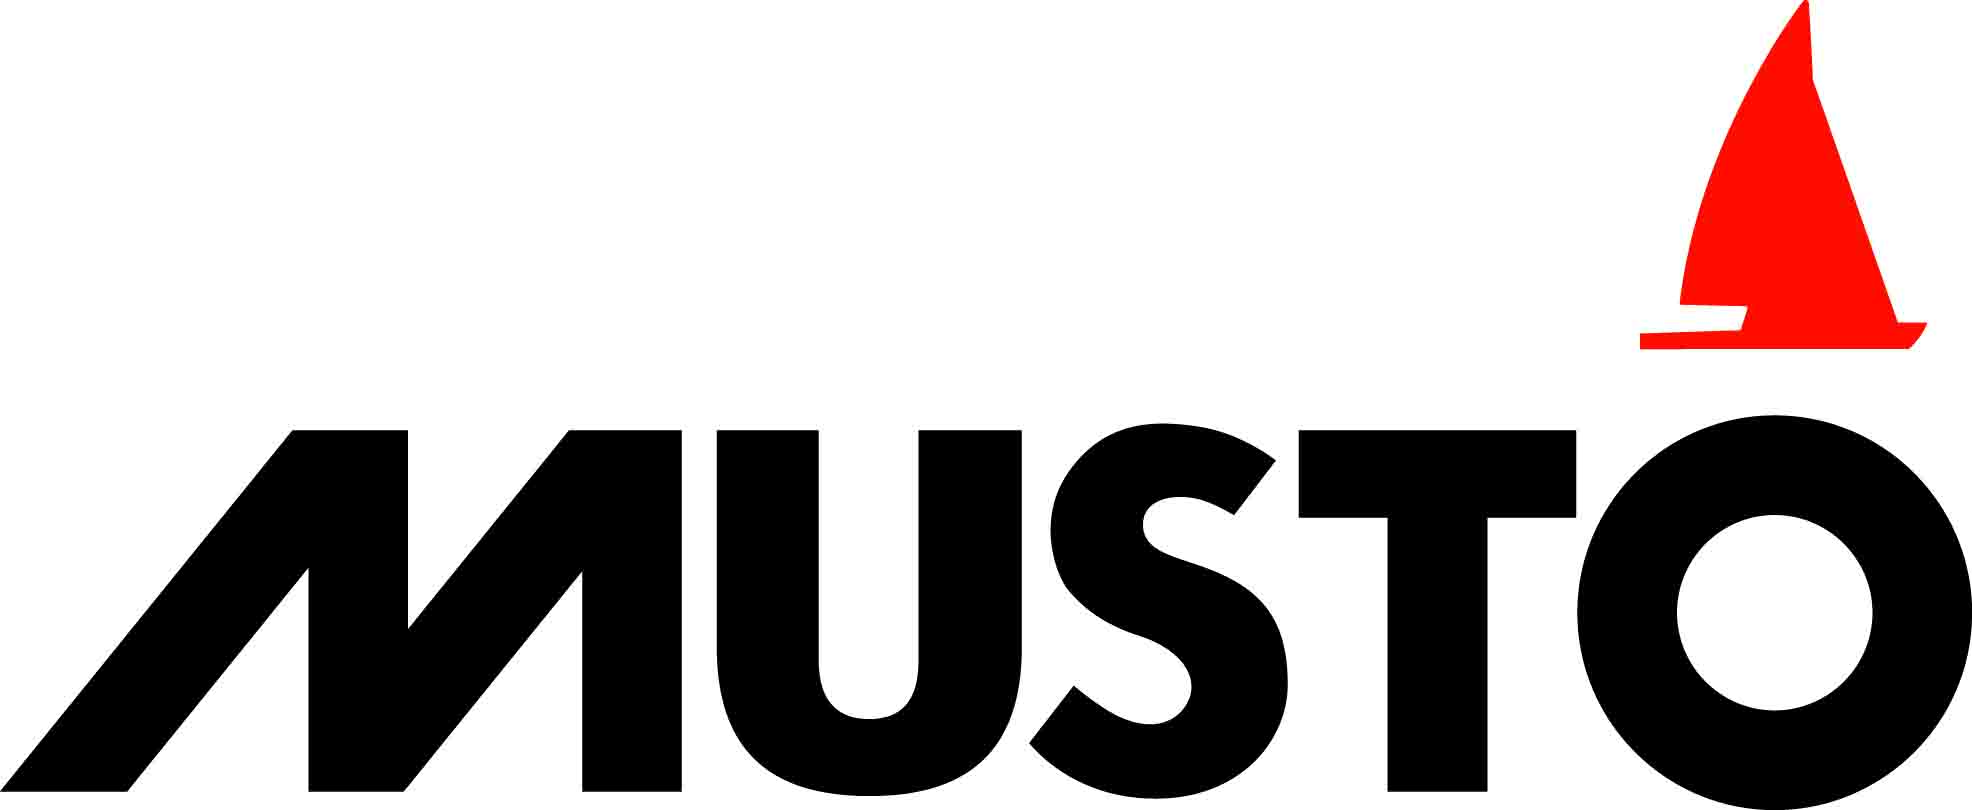 Logo Musto_Word_Mark_Segelboot.jpg